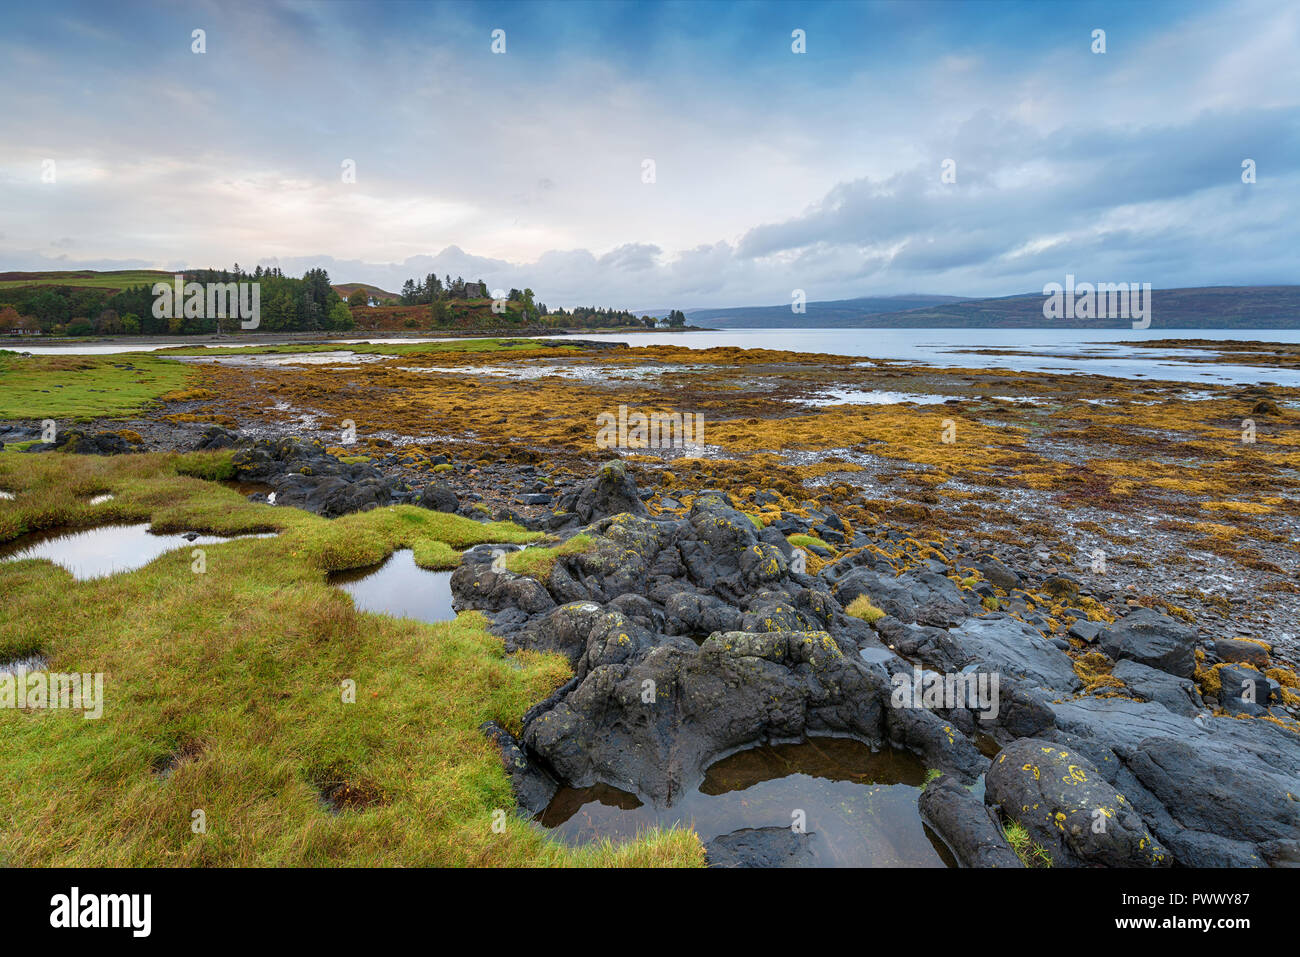 Aros near Tobemory on the Isle of Mull in Scotland - Stock Image